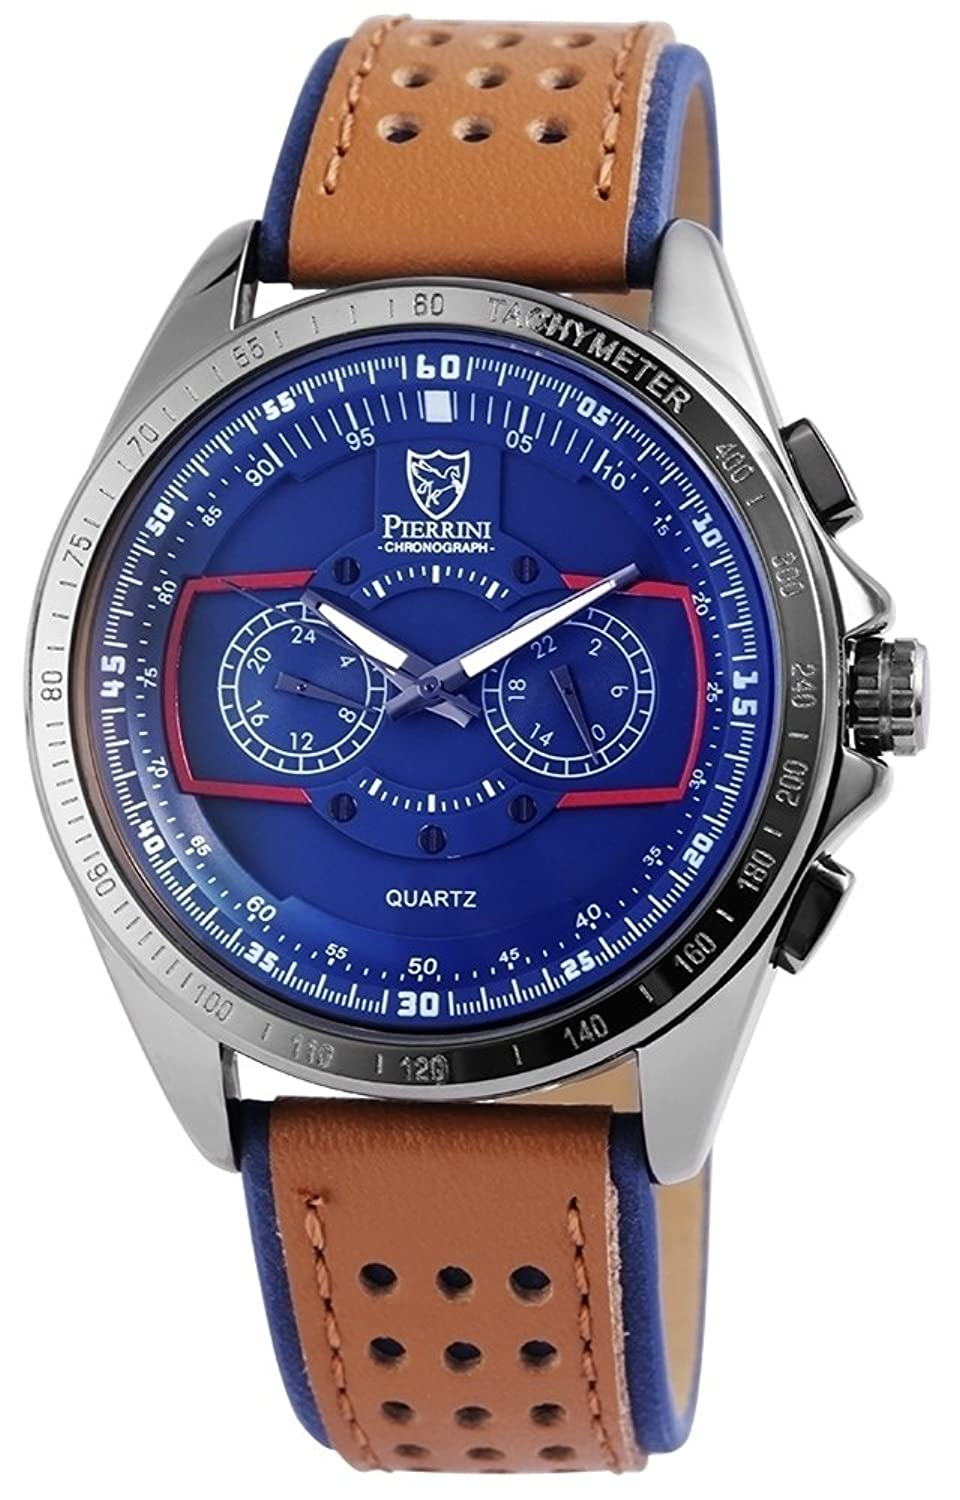 Pierrini Herren Dual Time Armbanduhr Lederband Analog Quarz Blau 291173000003